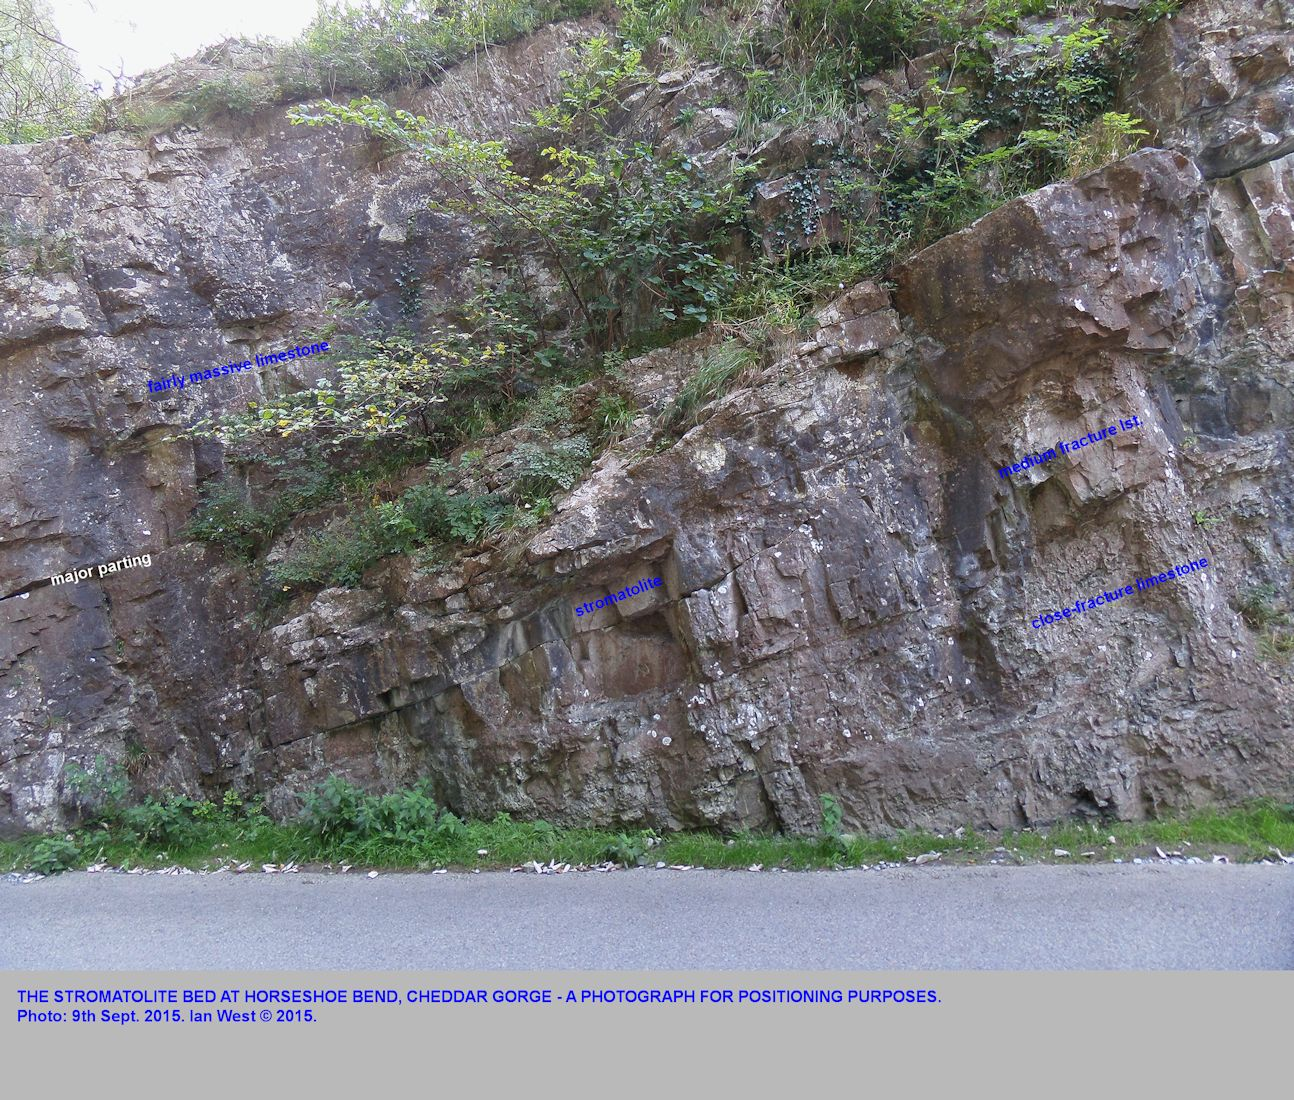 A general photograph, for positioning purposes, showing the stromatolite bed of the Lower Clifton Down Limestone at Horseshoe Bend, Cheddar Gorge, Mendip Hills, Somerset, 9th September 2015